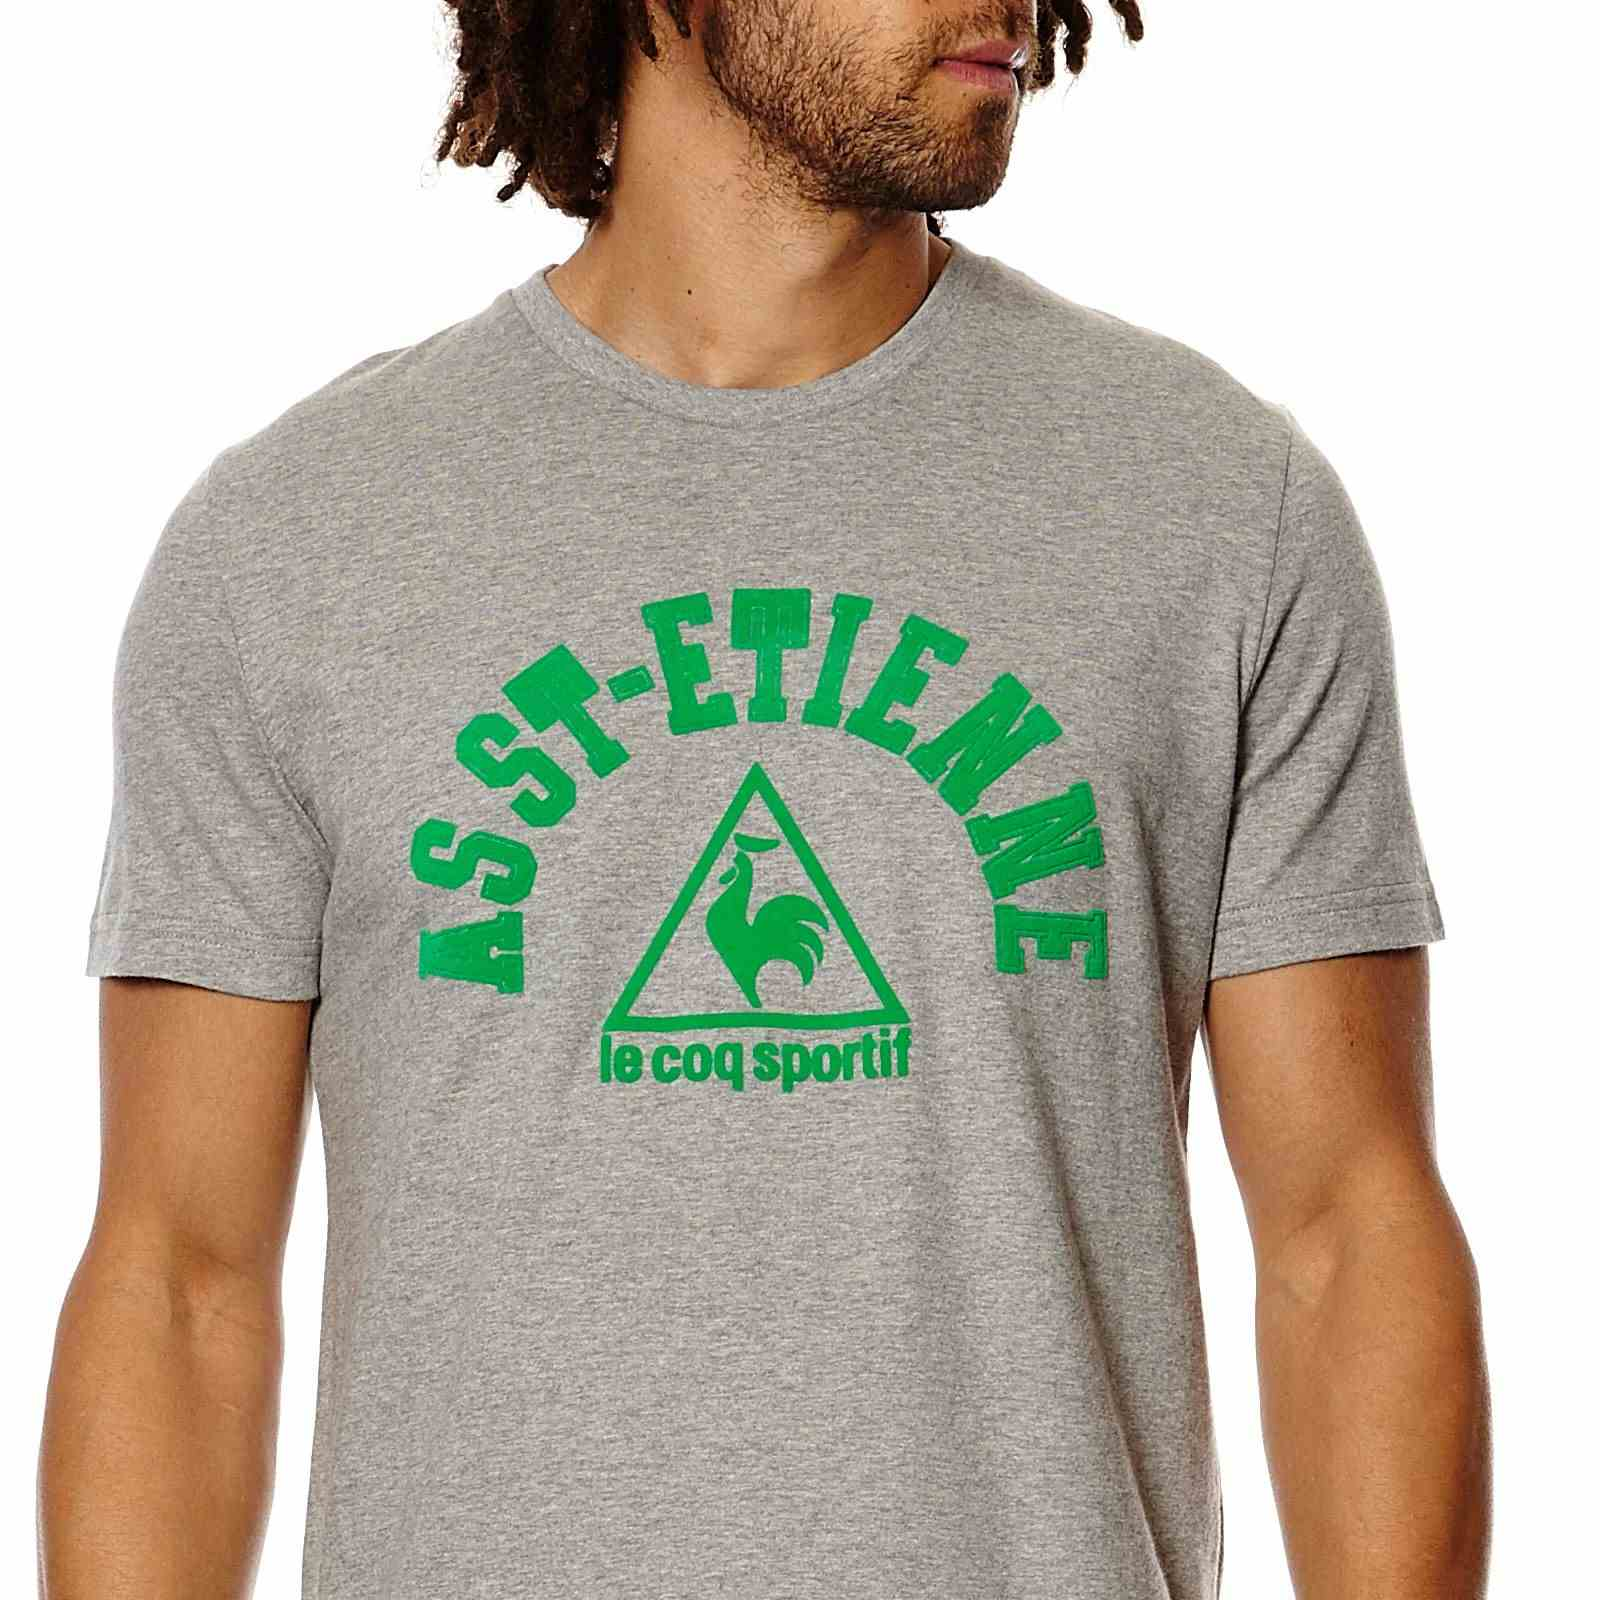 Le coq sportif t shirt brandalley for Simply for sports brand t shirts